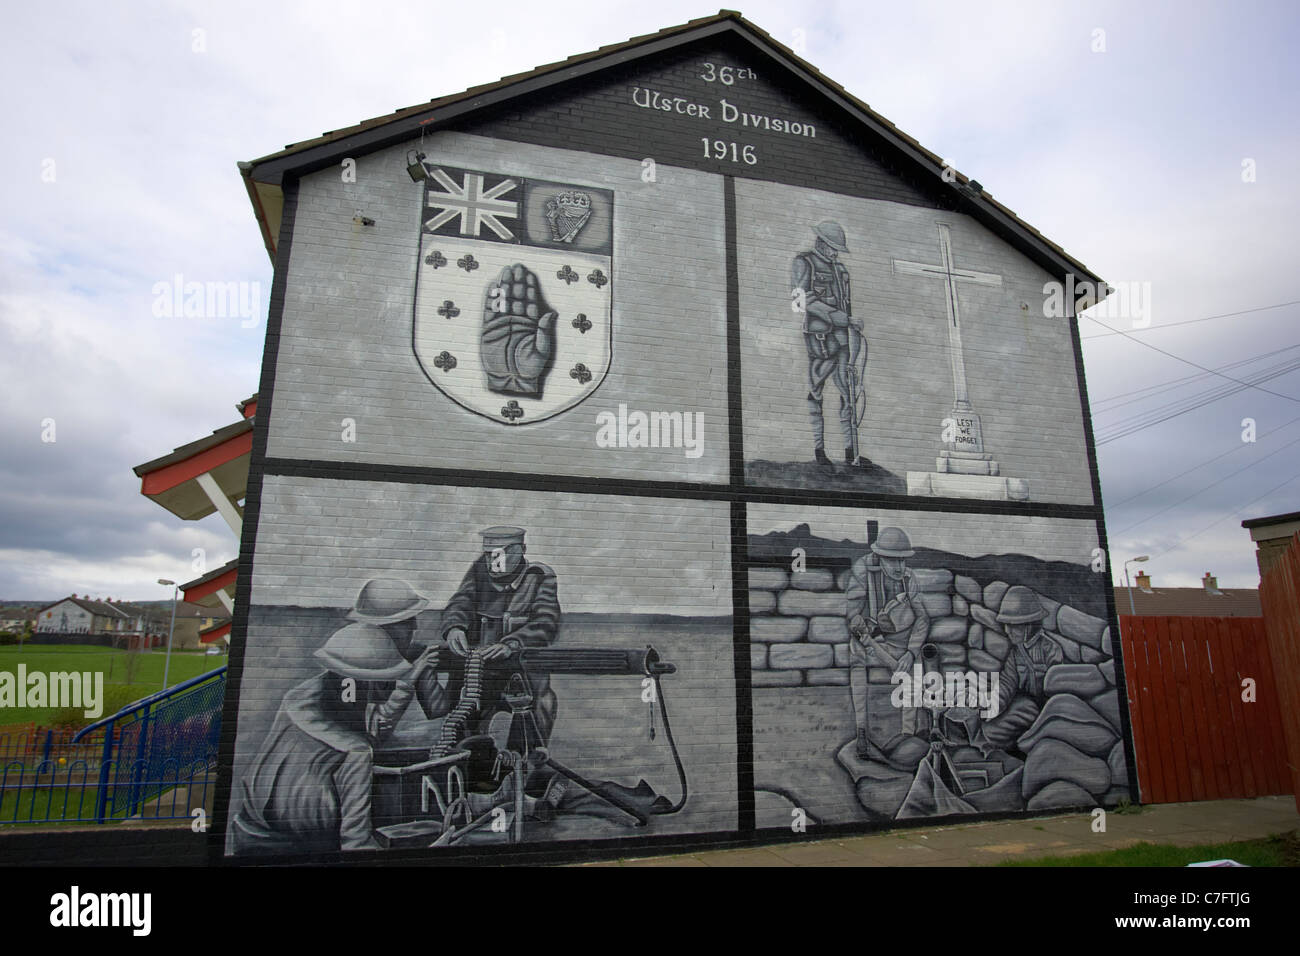 36th ulster division 1916 loyalist wall mural painting for Exterior mural painting